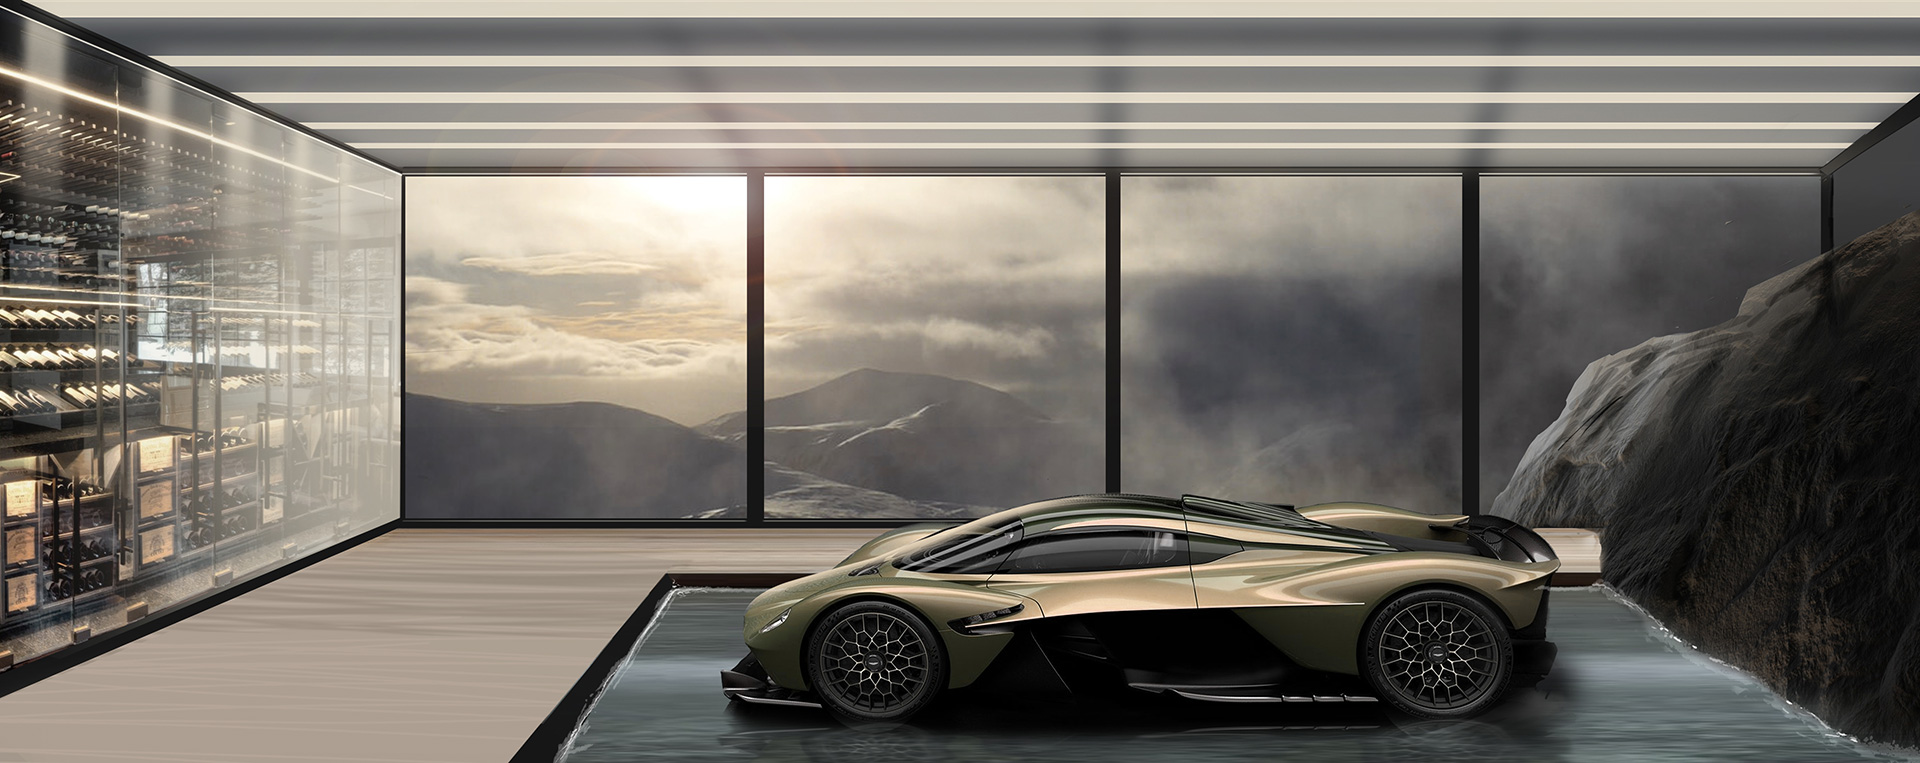 The automotive galleries and lairs take Aston Martin ownership to a new level | Aston Martin Automotive Galleries and Lairs| STIRworld